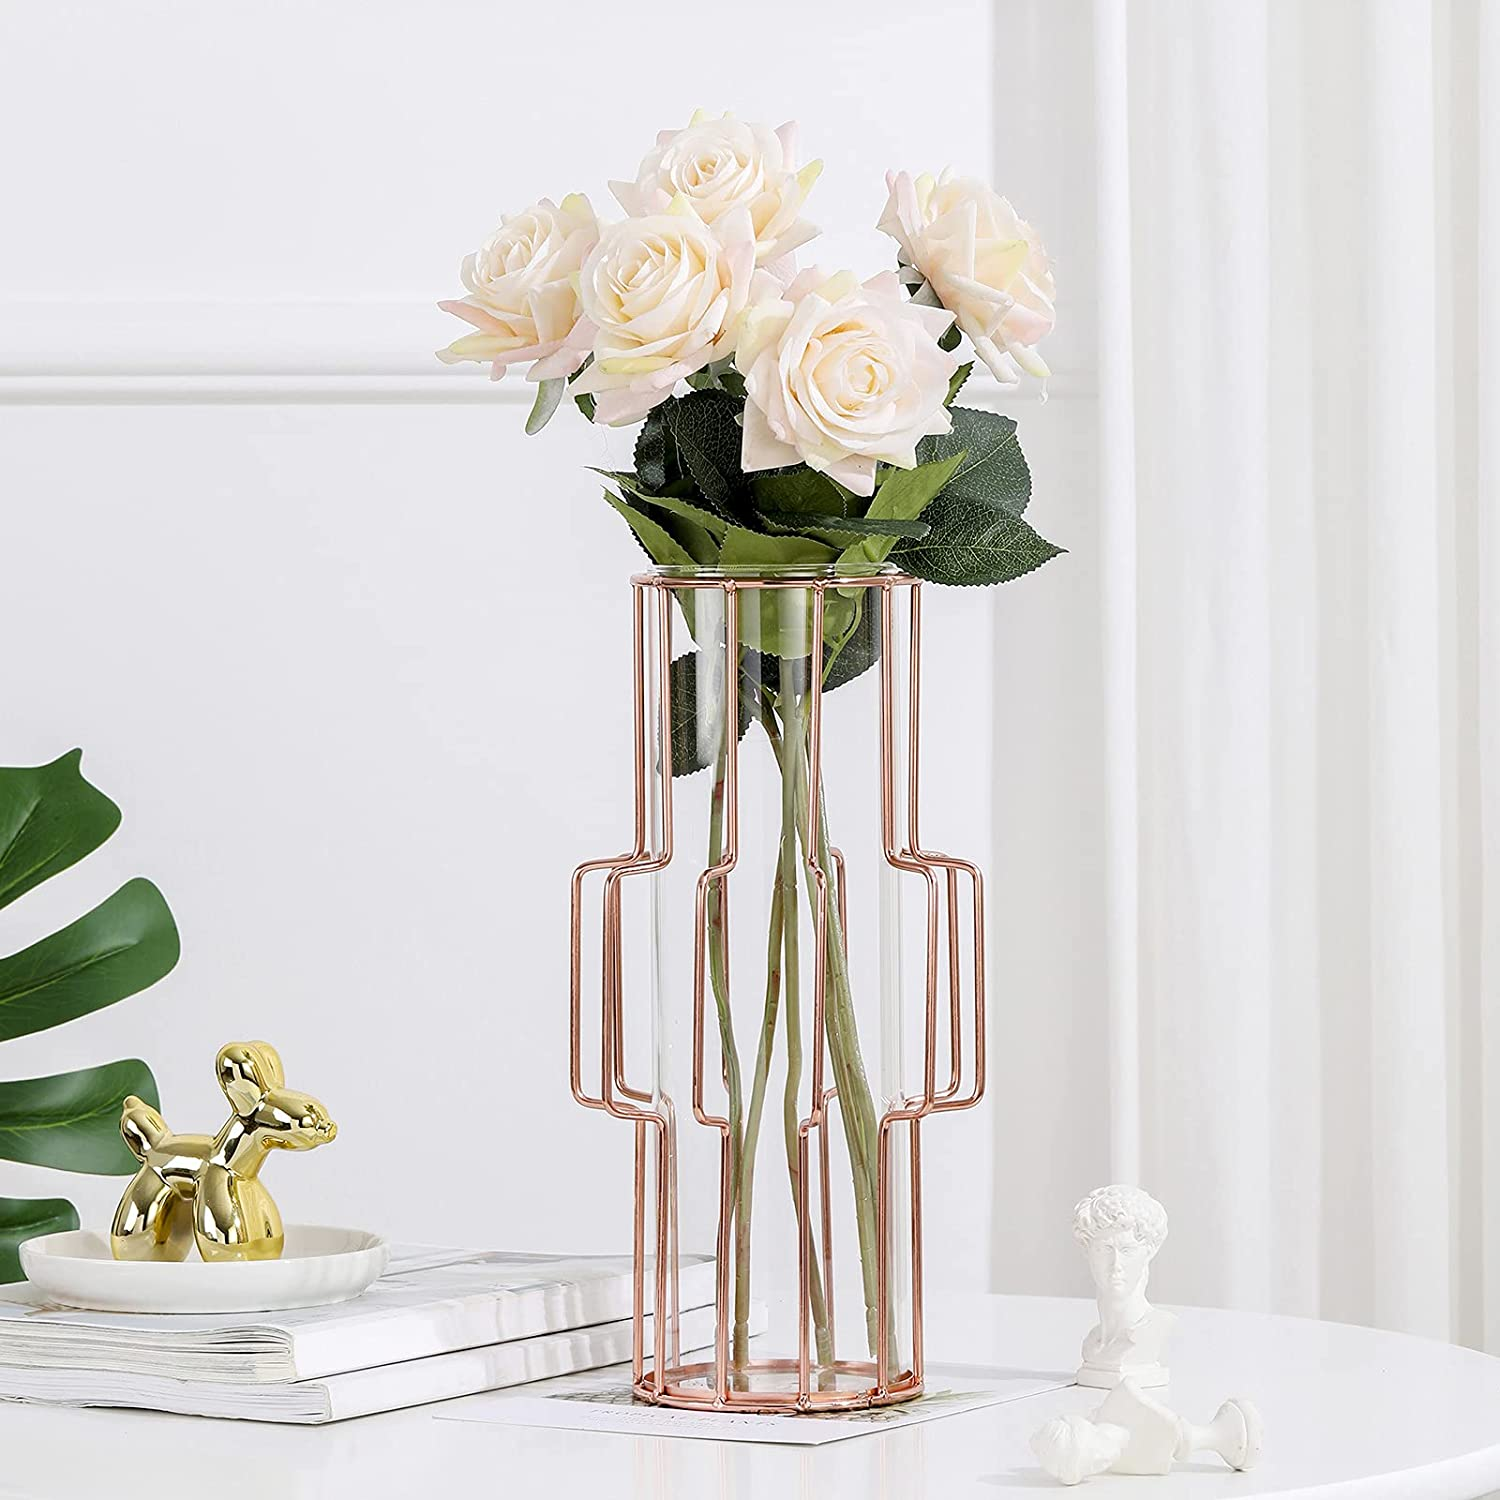 Glass Vase with Geometric Metal 4 years warranty Inner Max 47% OFF Frame Crystal Transparent